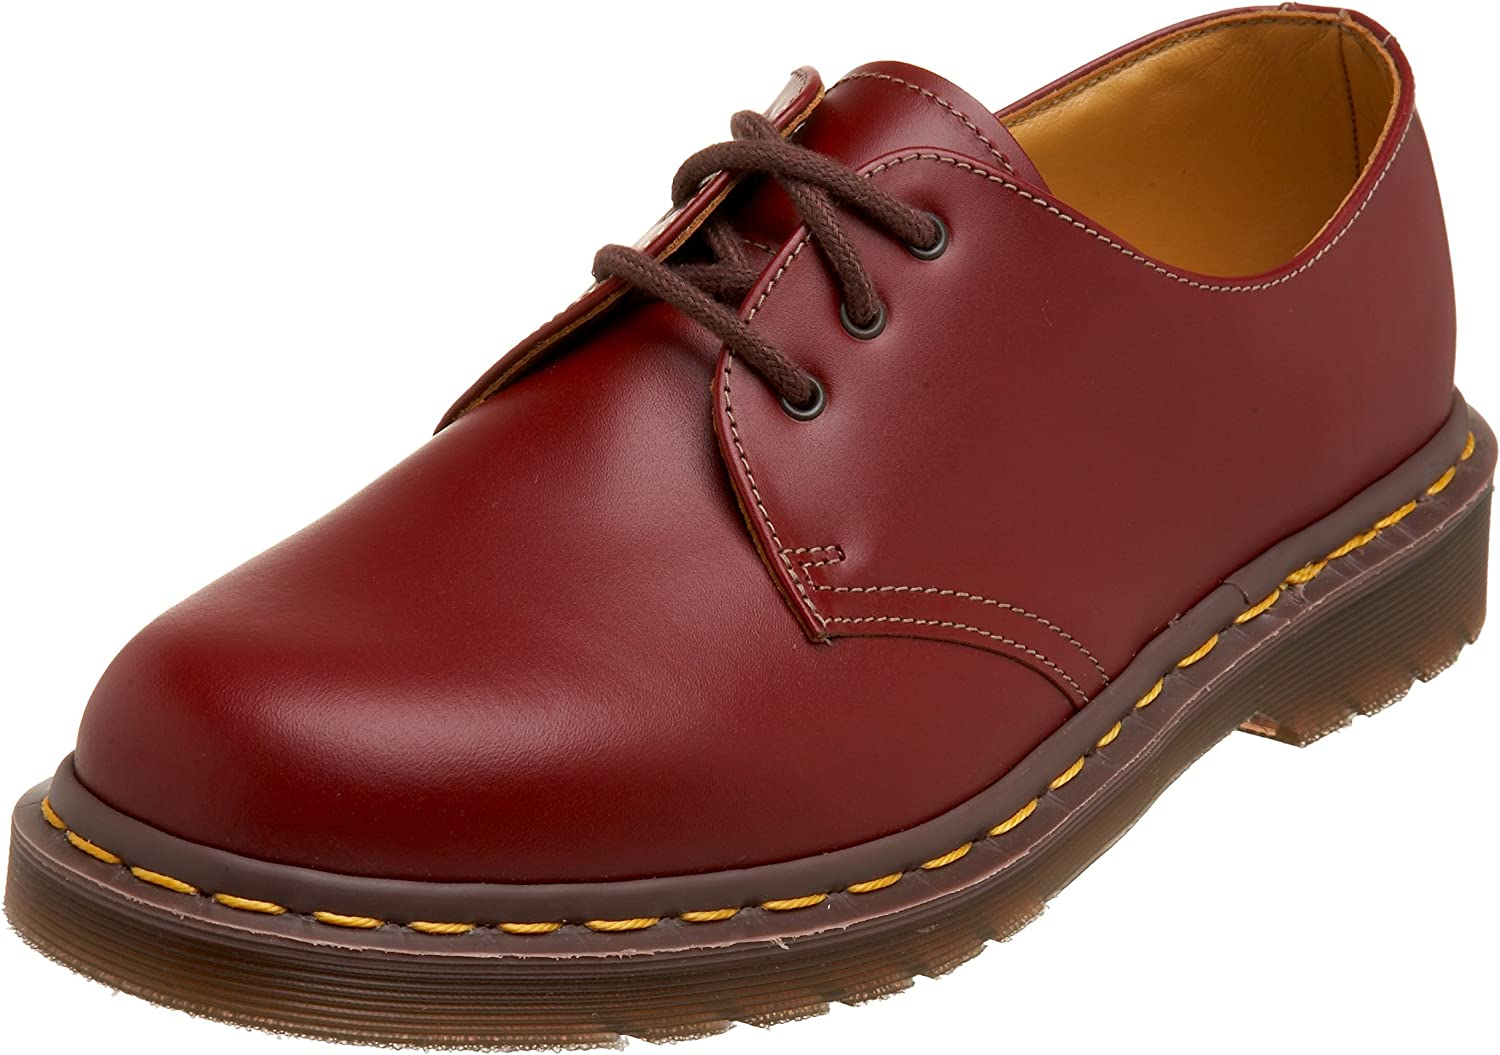 Dr. Martens Made in England Vintage 1461 Oxblood